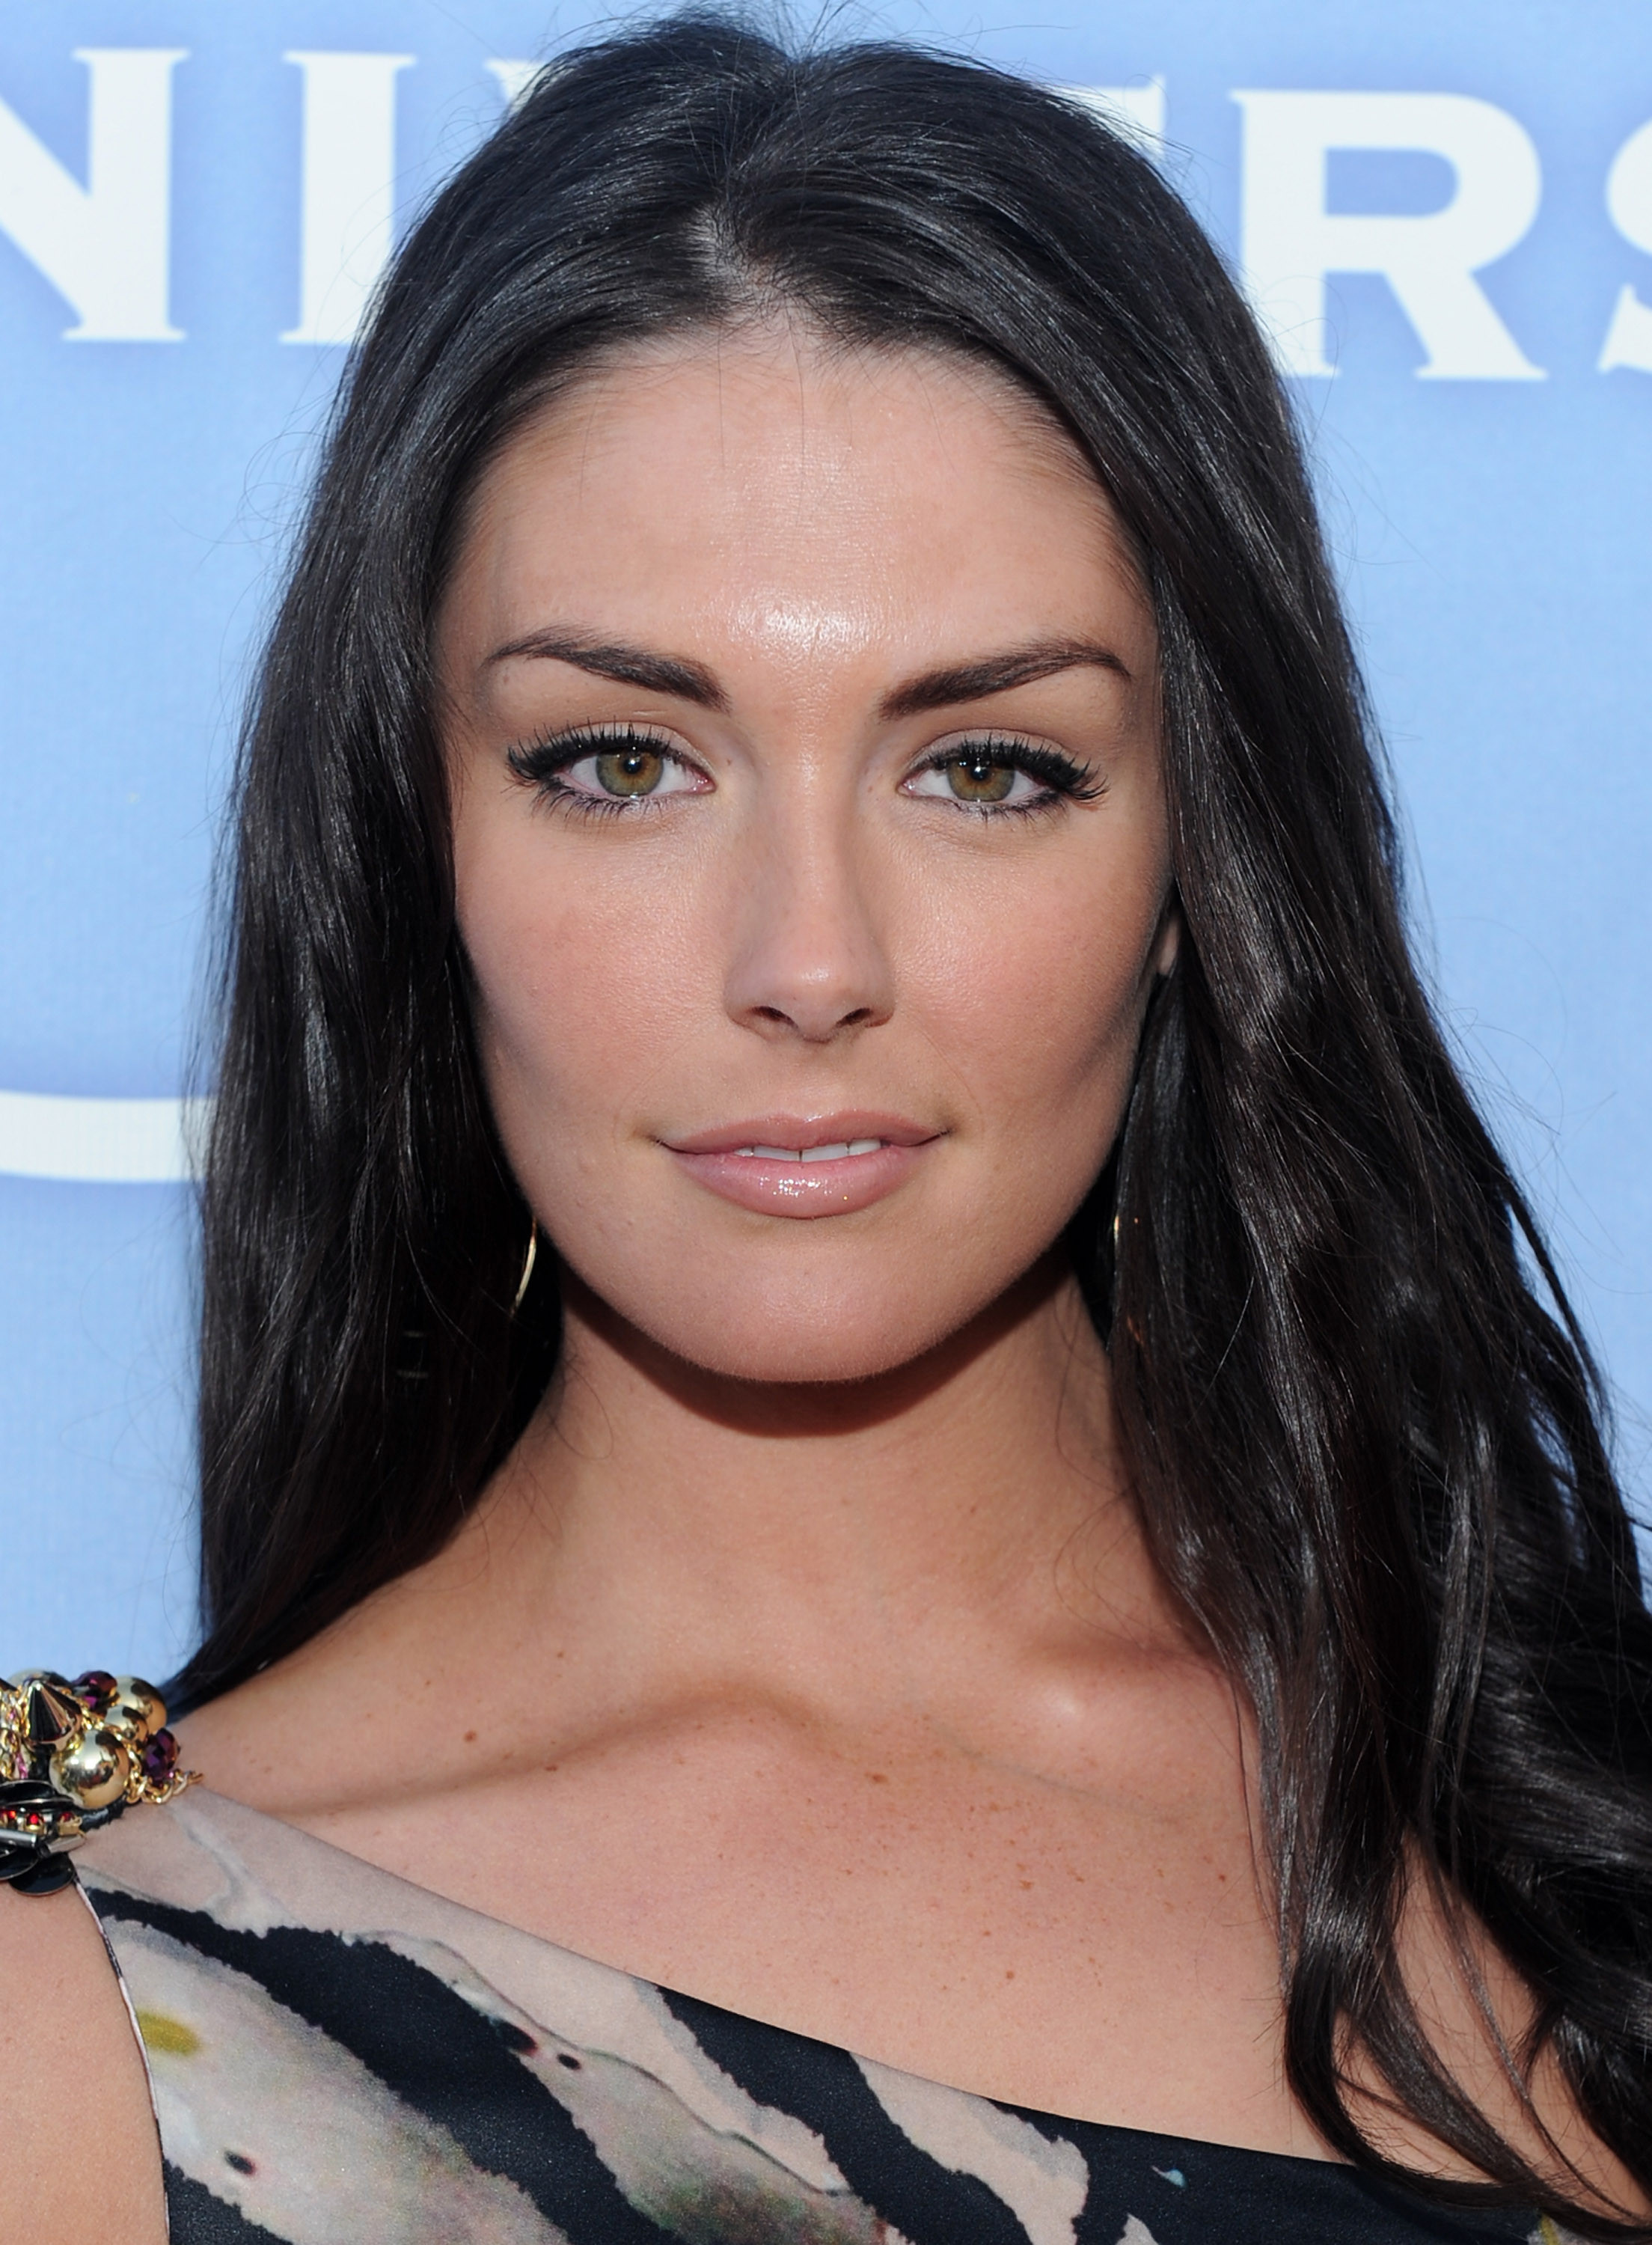 The 33-year old daughter of father (?) and mother Deborah Quinn, 174 cm tall Taylor Cole in 2017 photo